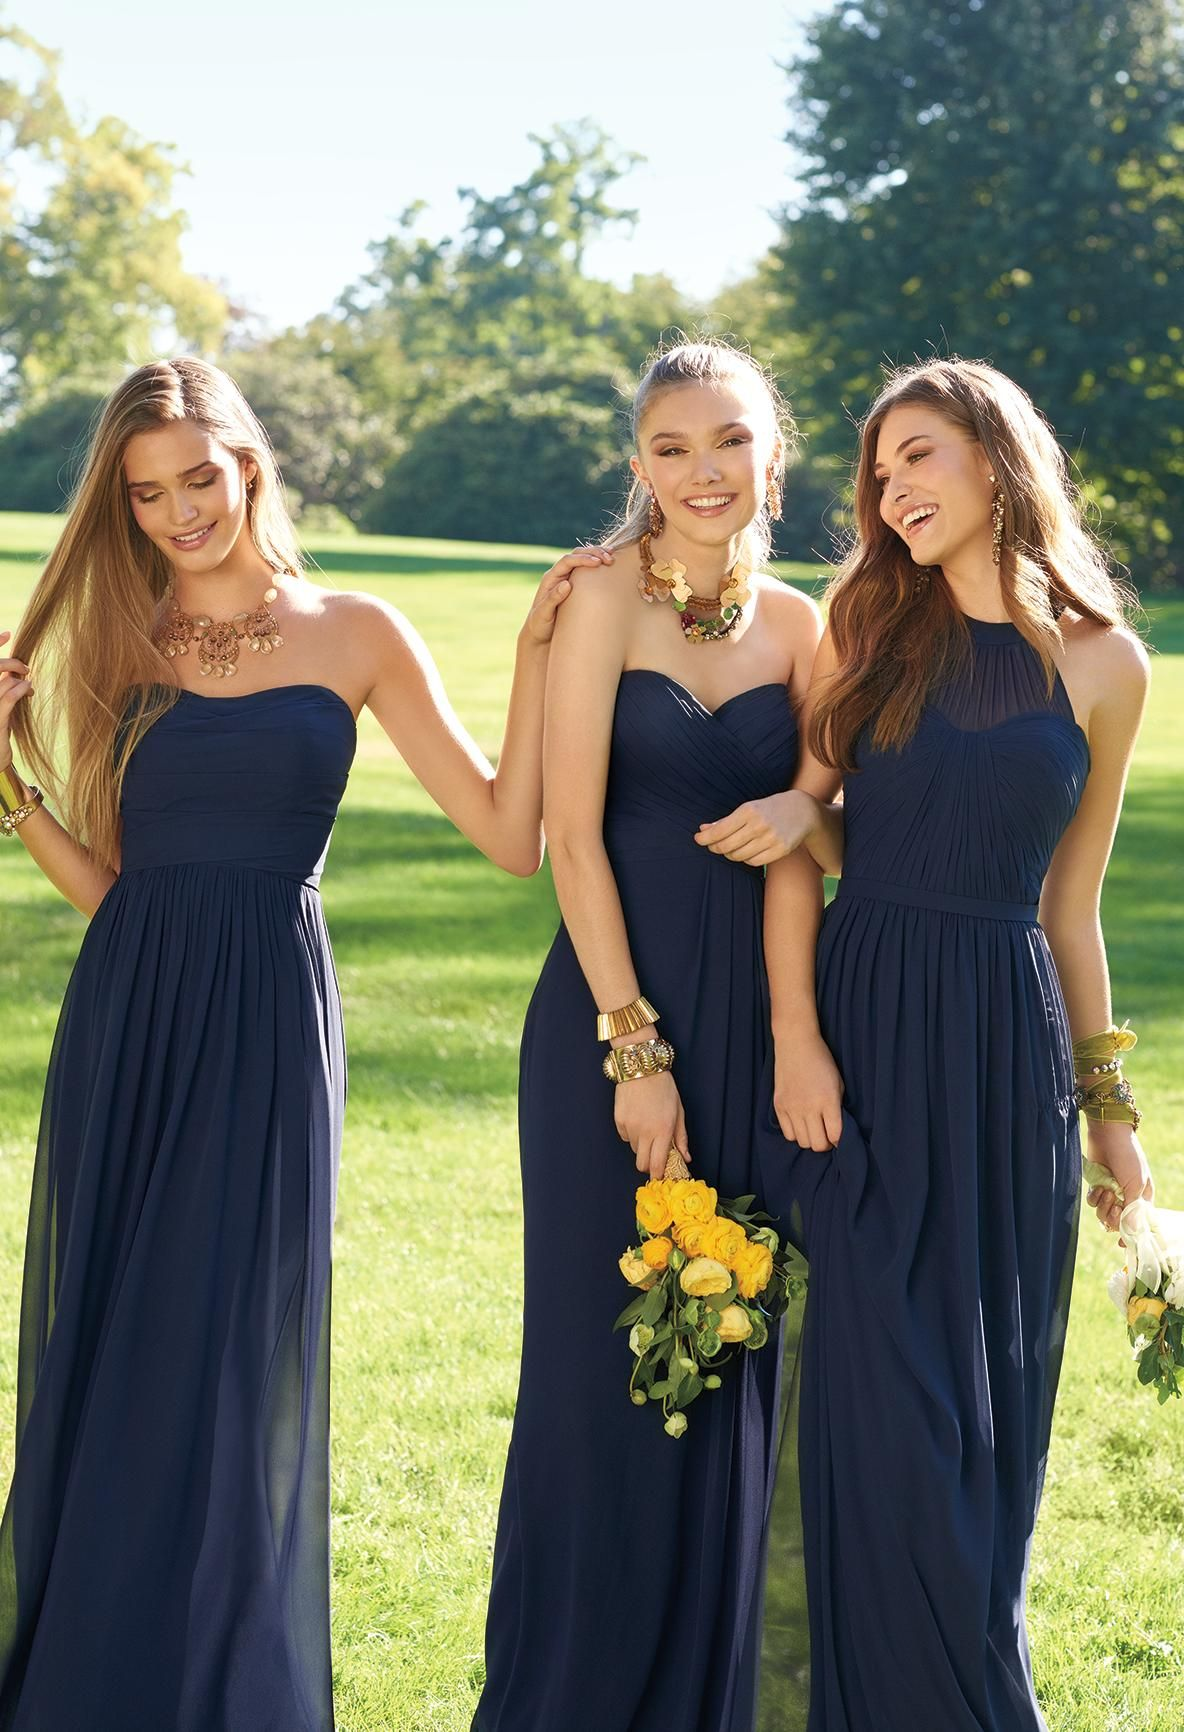 Natural beauties in navy see our new chic collection of see our new chic collection of bridesmaids dresses now for your ombrellifo Image collections